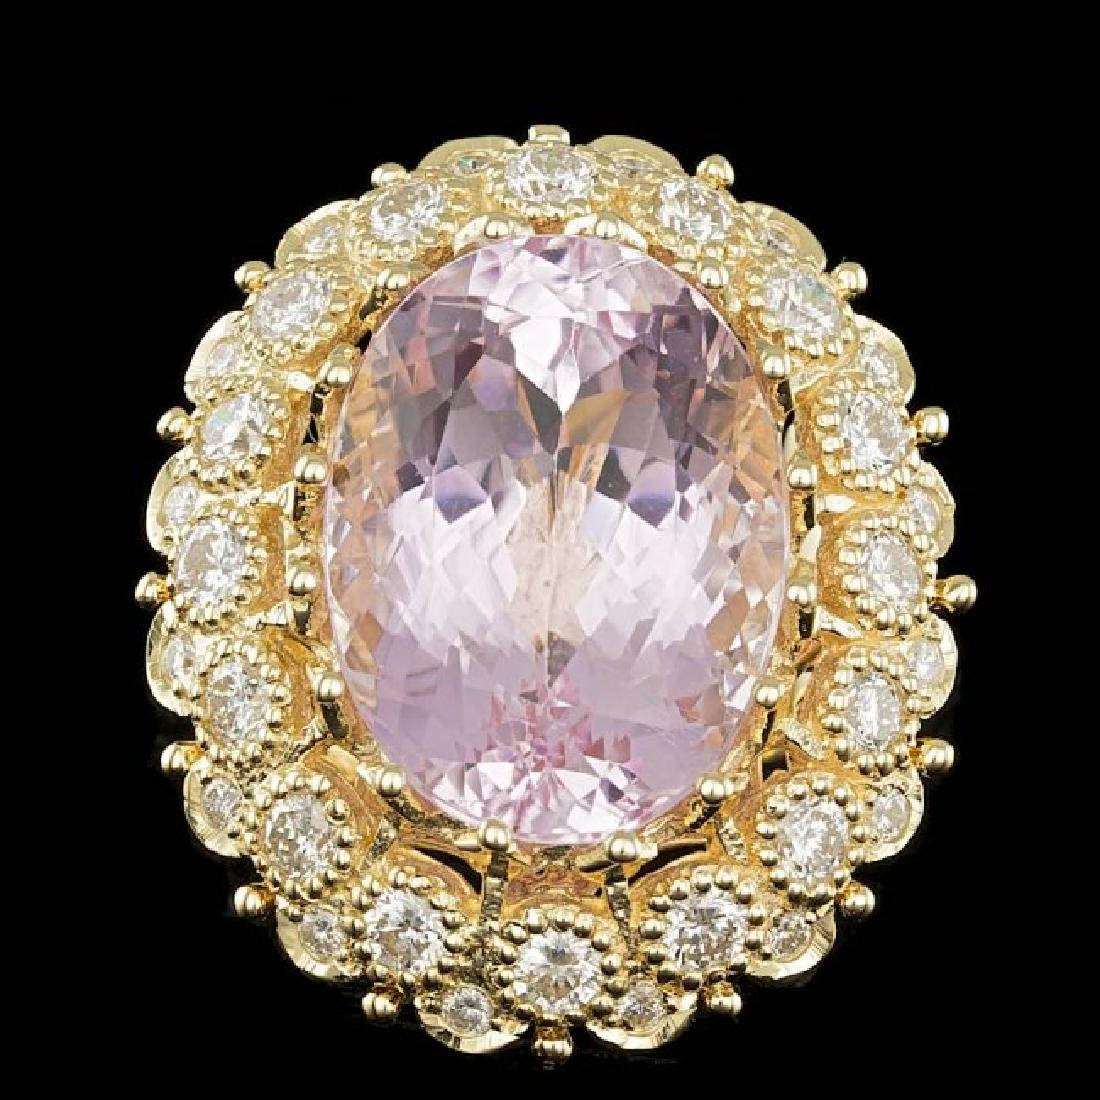 14k Gold 22.00ct Kunzite 2.45ct Diamond Ring